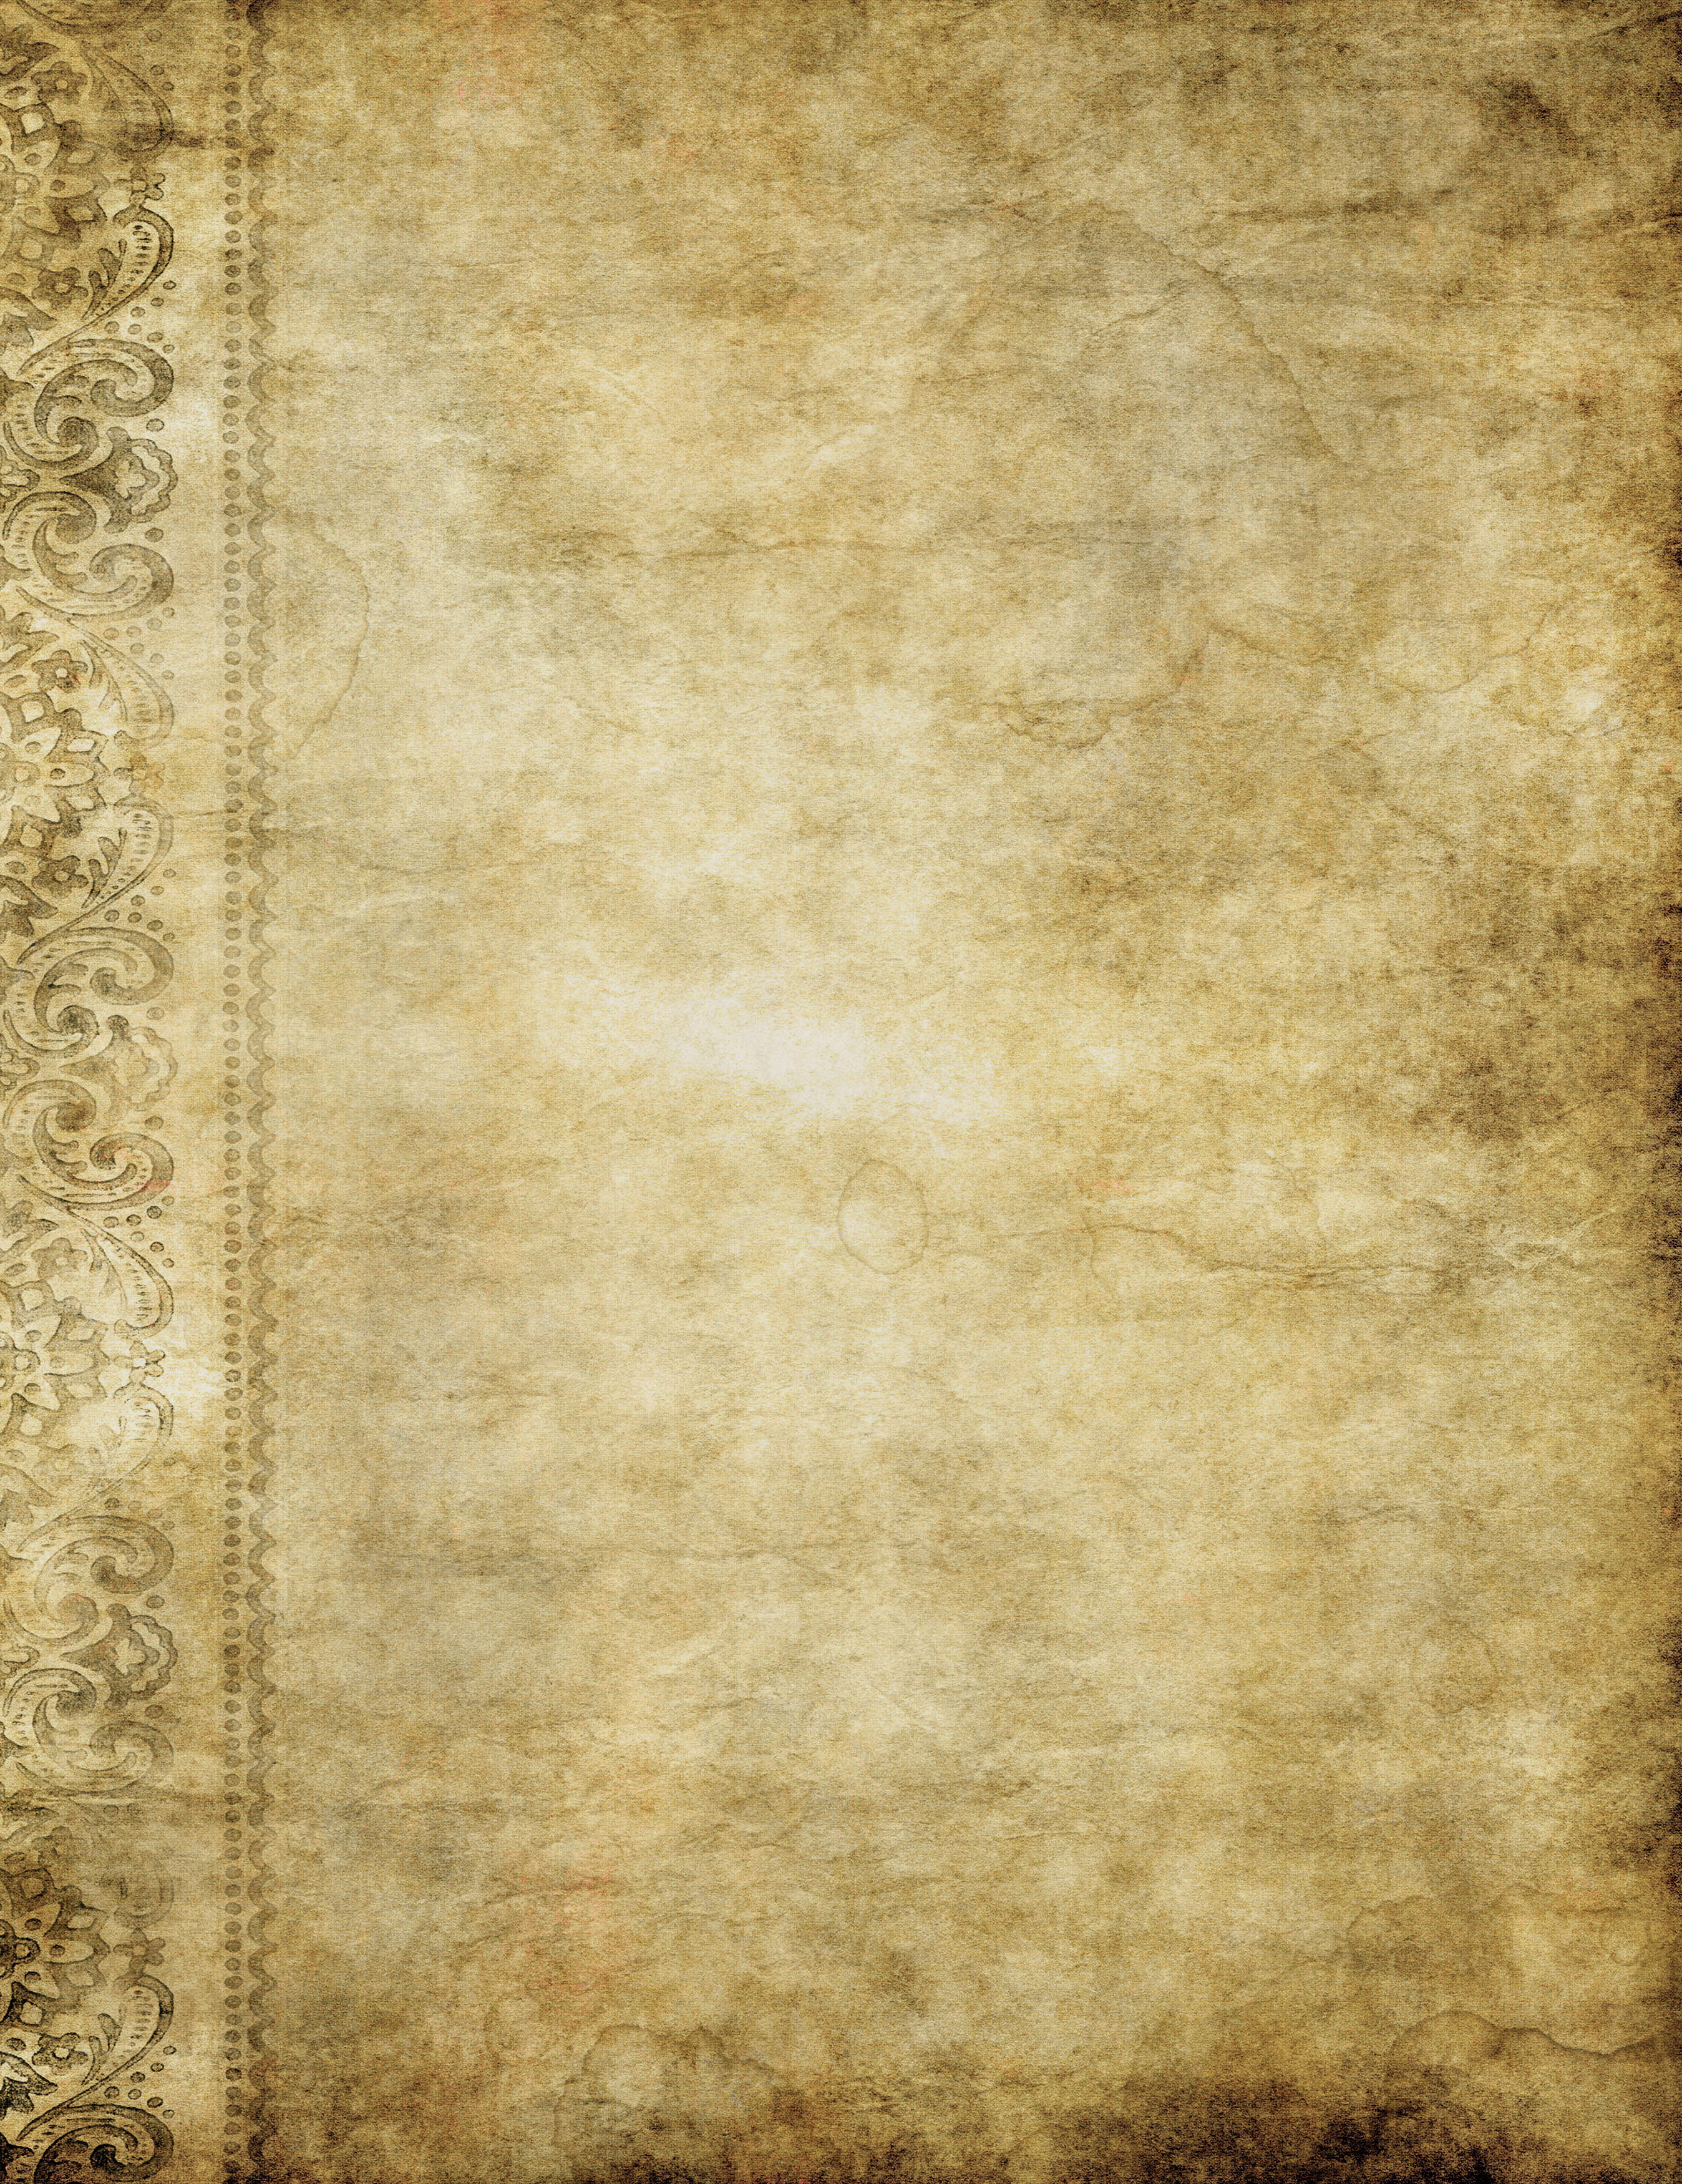 Another old grunge paper or parchment background image 2696x3500